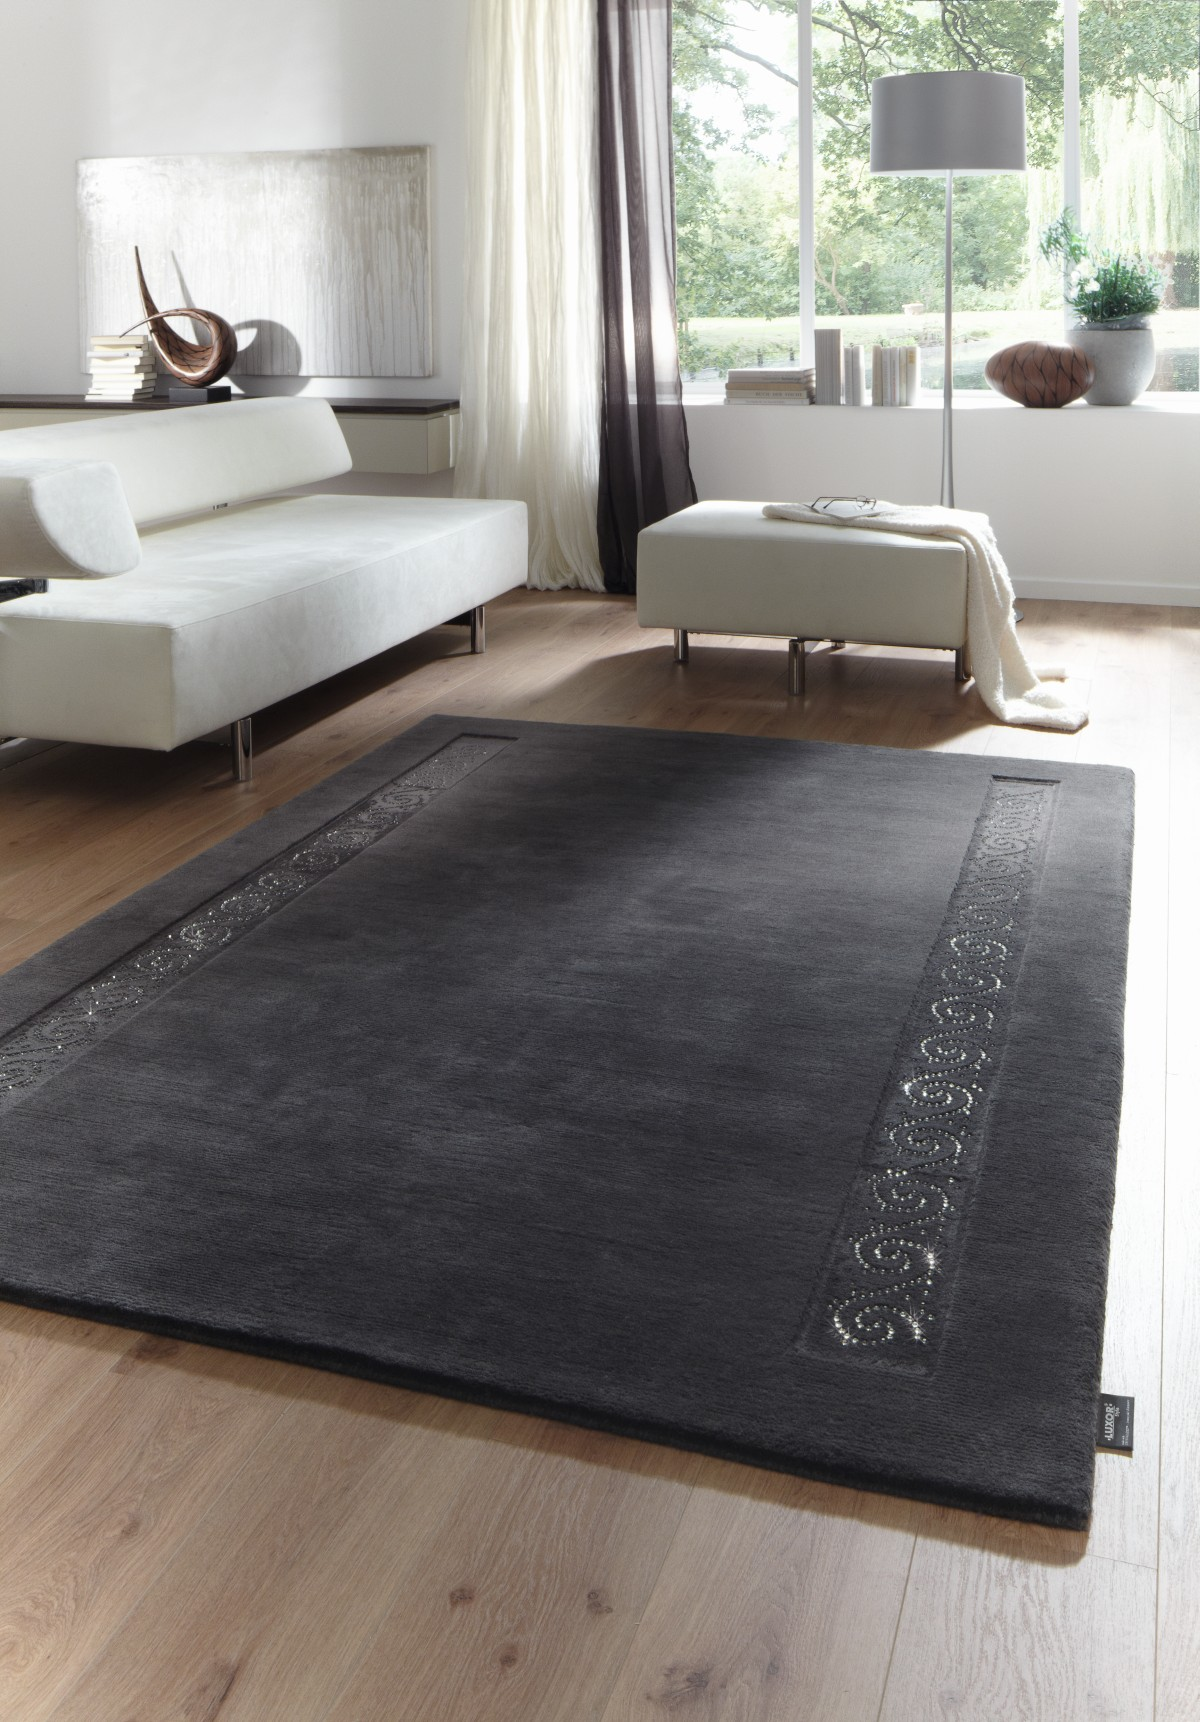 Luxor Living Teppich Living Floor Teppiche Top Already Have The App With Living Floor